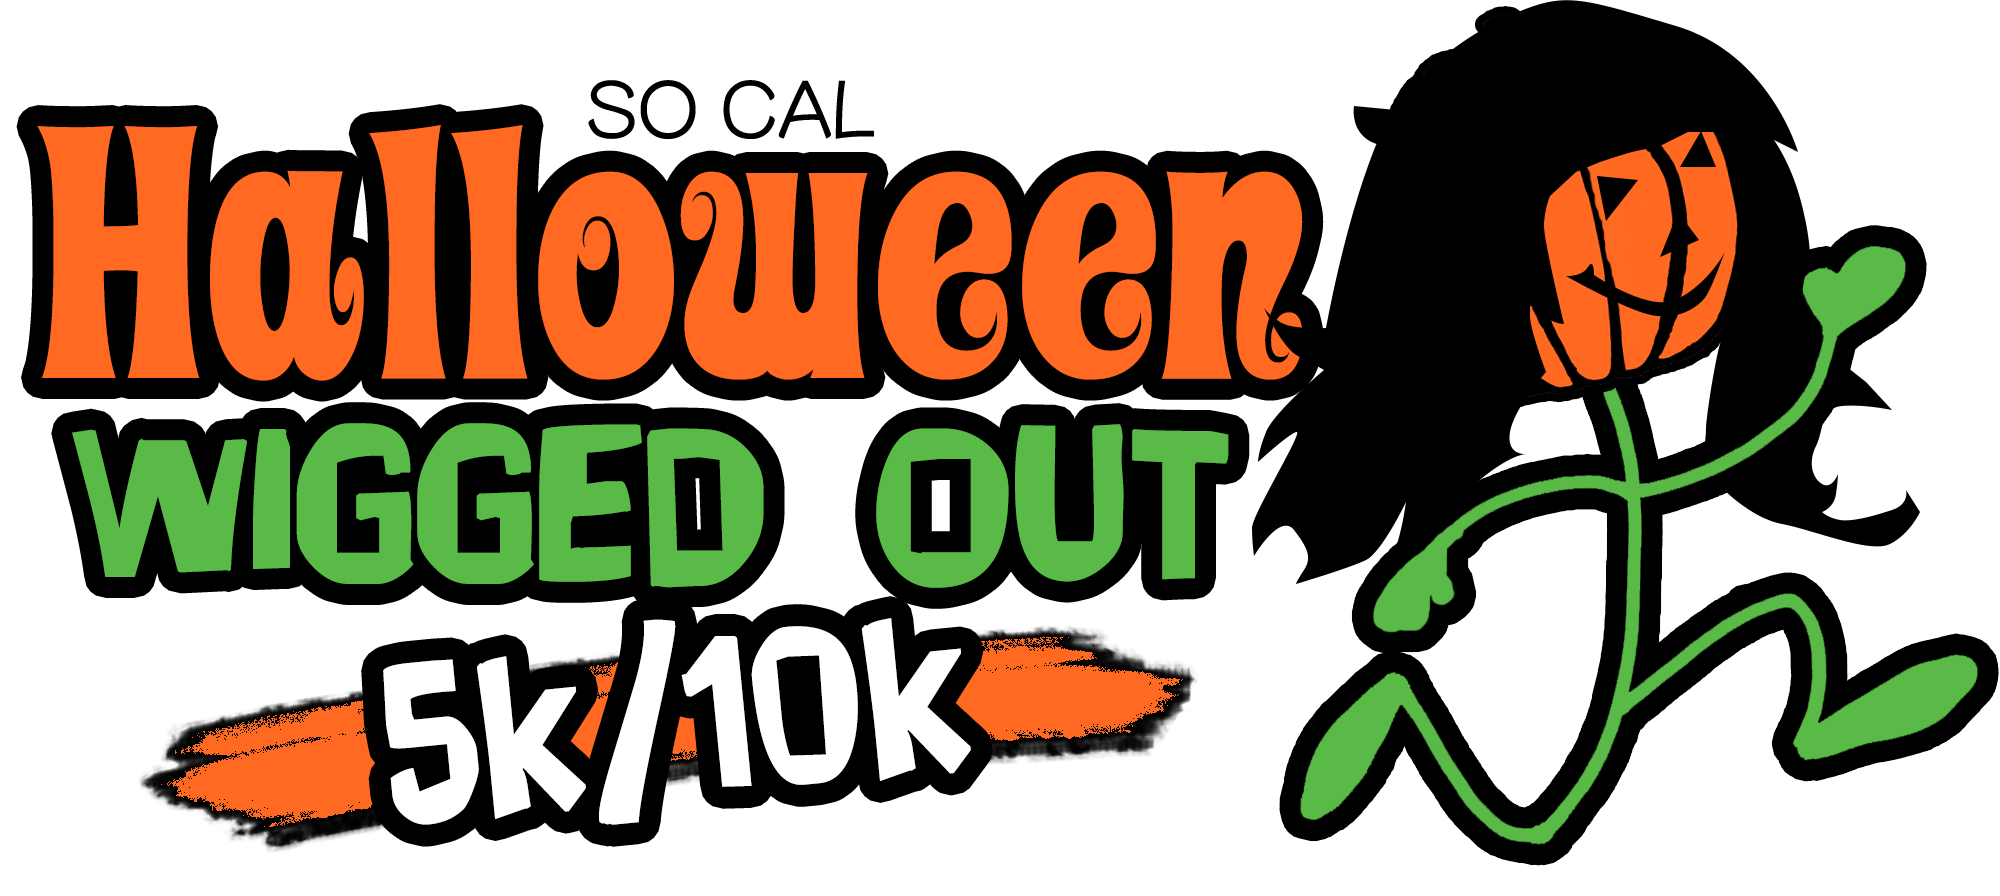 October halloween clipart clip art transparent Halloween Wigged Out 5k | Itz About Time - Electronic/Chip Timing ... clip art transparent